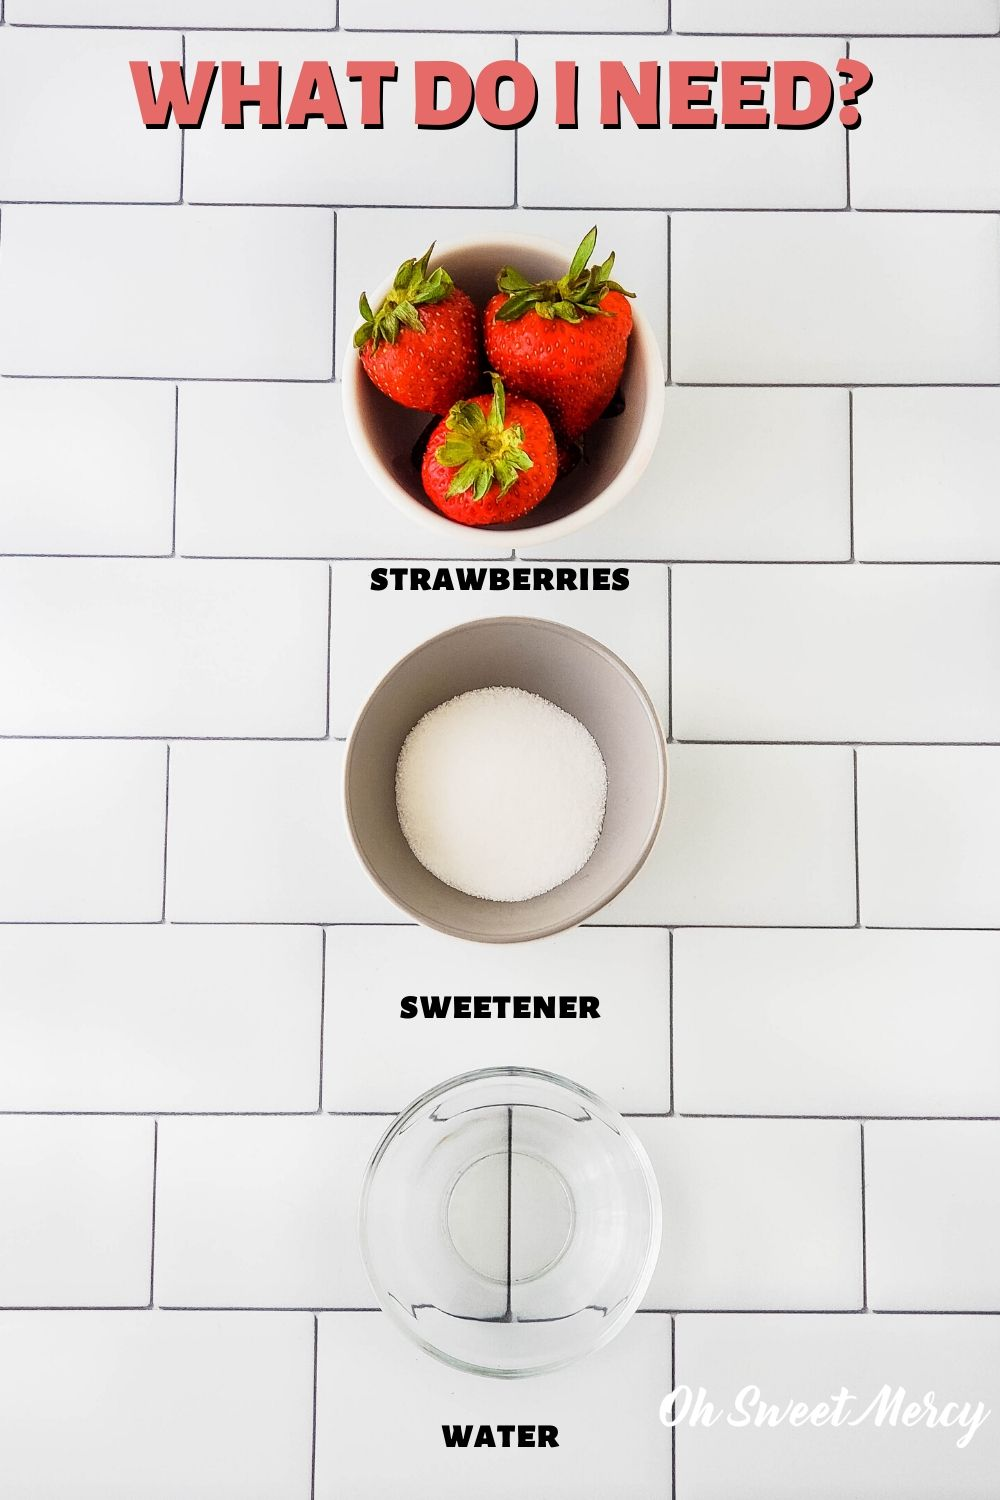 Ingredients for sugar free strawberry sauce: strawberries, sweetener, water, optional salt